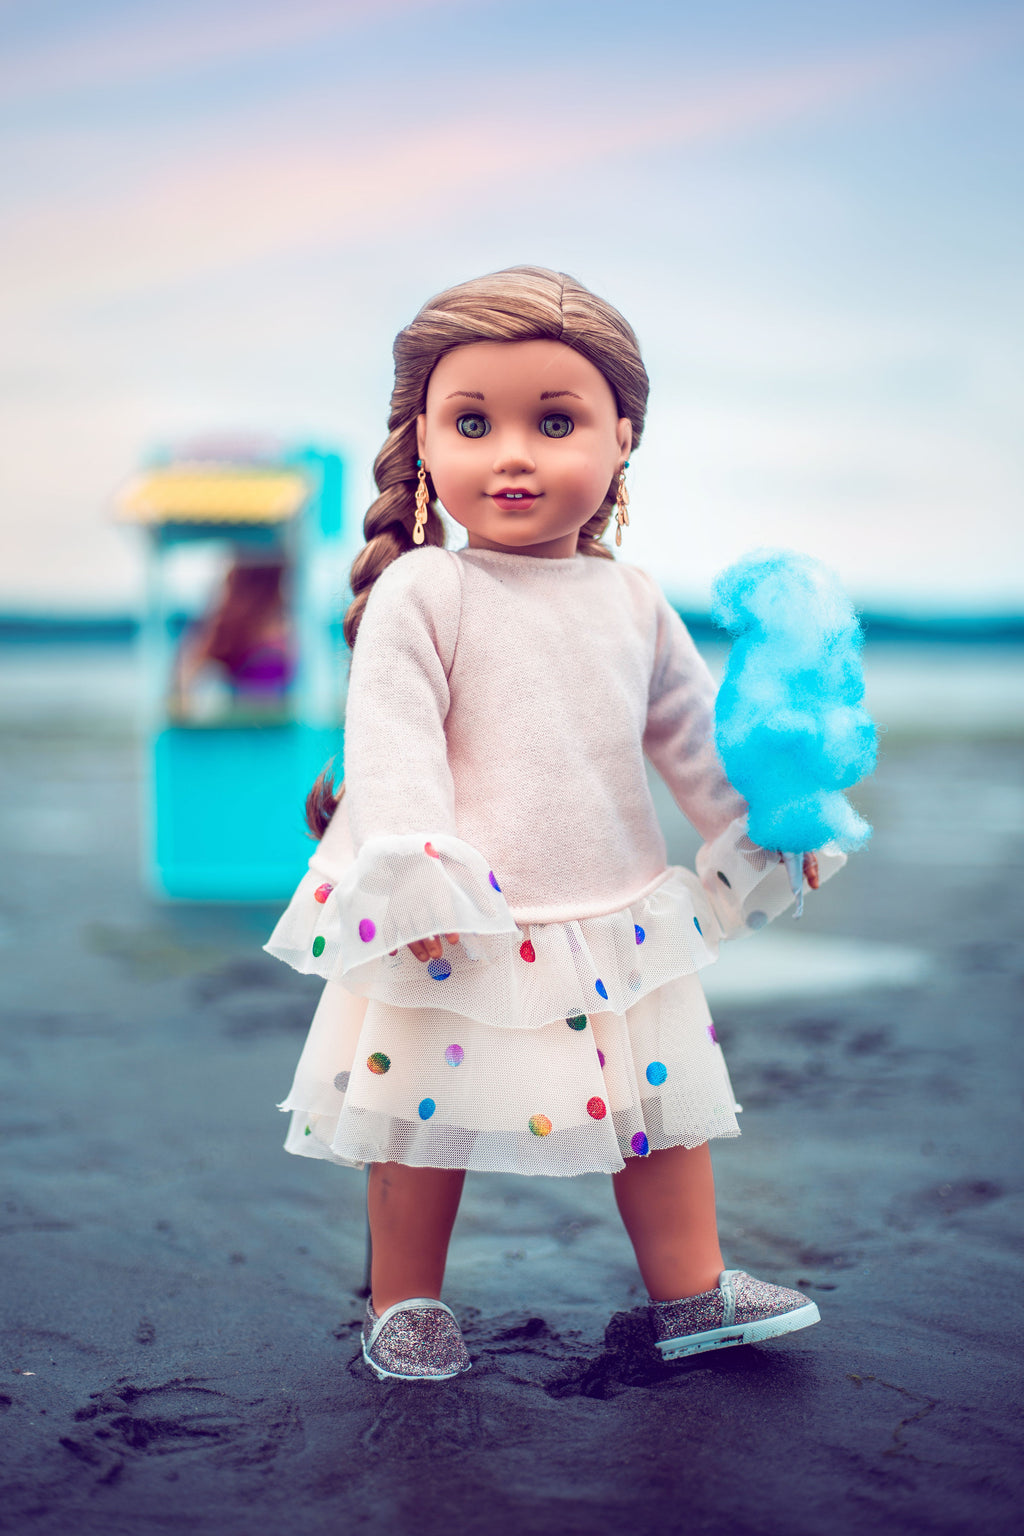 Ruffle Doll Sweatshirt